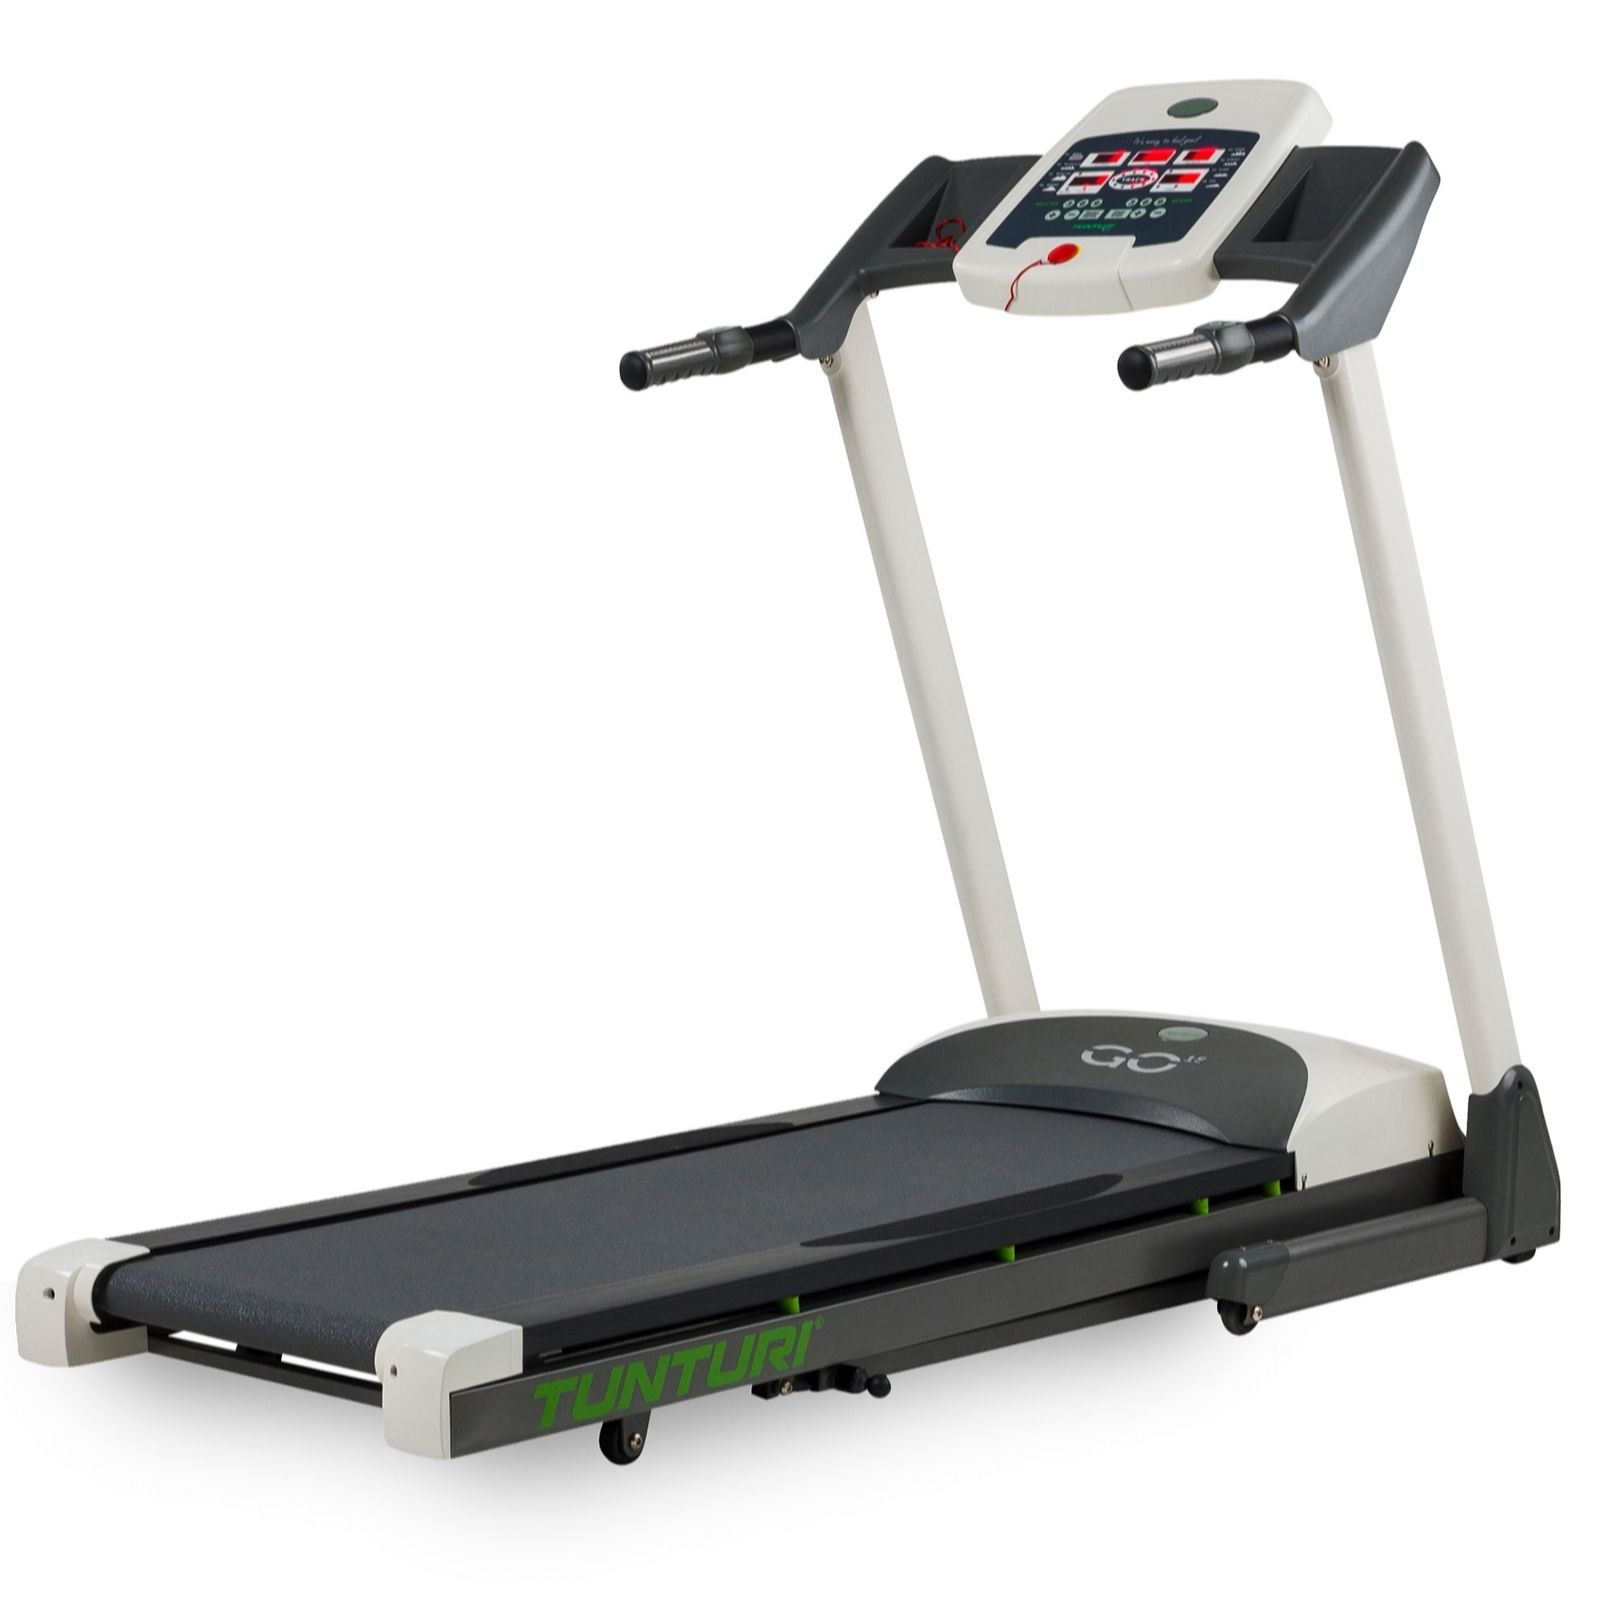 Tunturi Go Run 10 Motorised Folding Treadmill - 401253